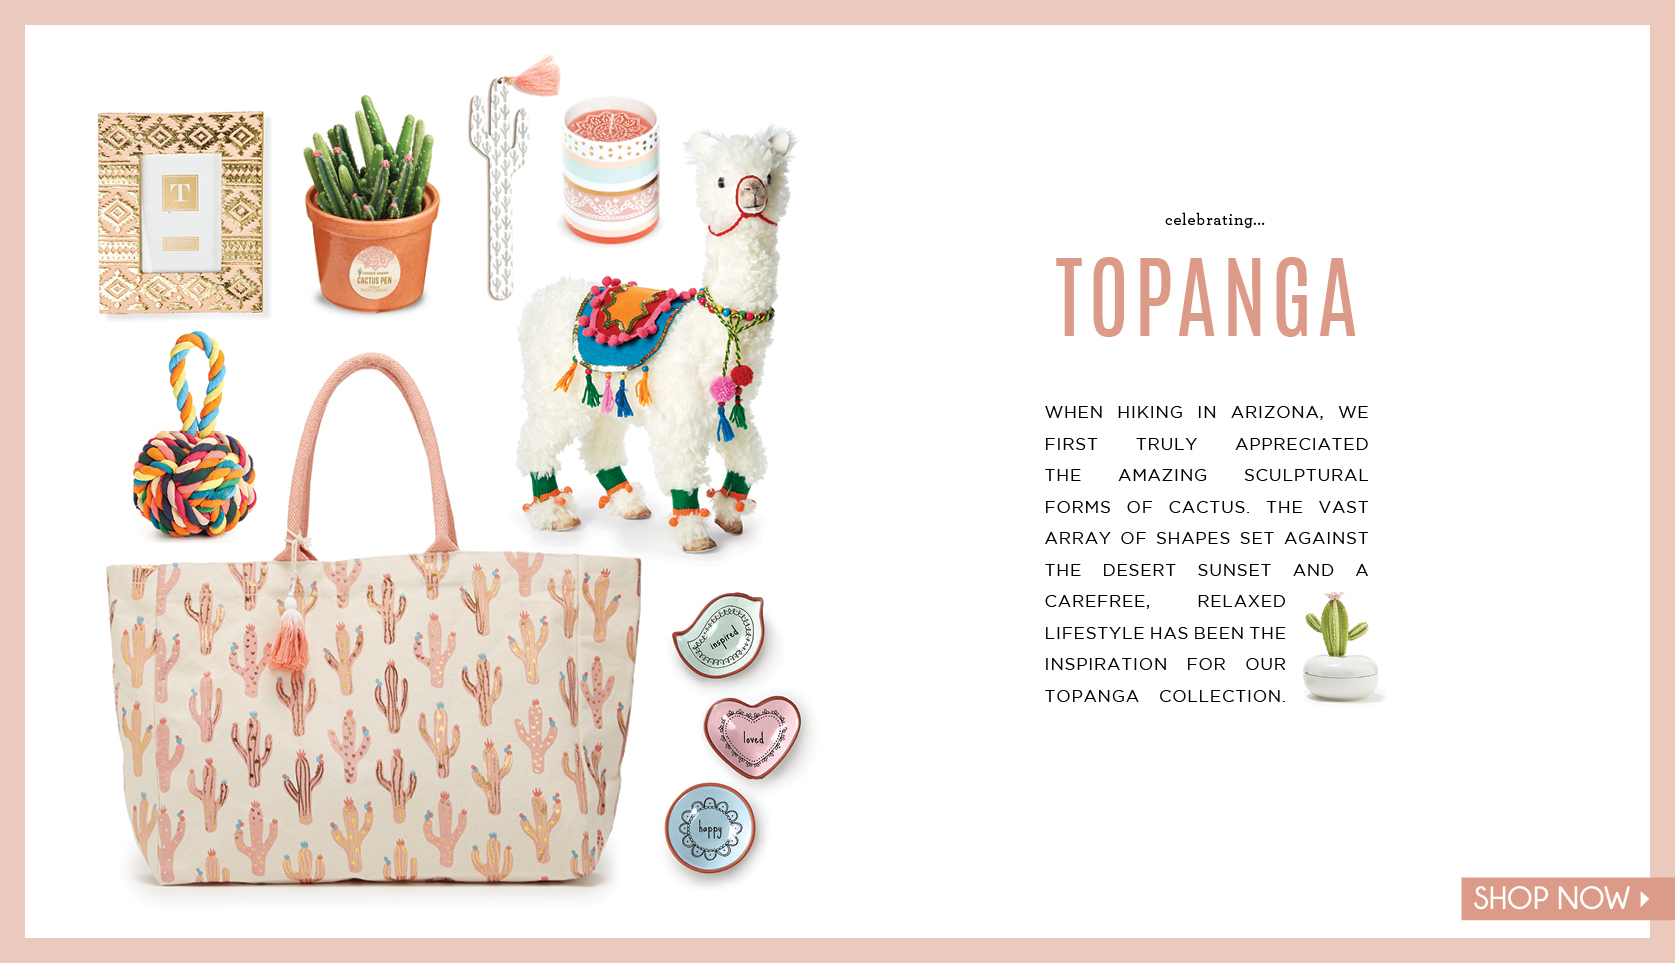 Topanga Collection image